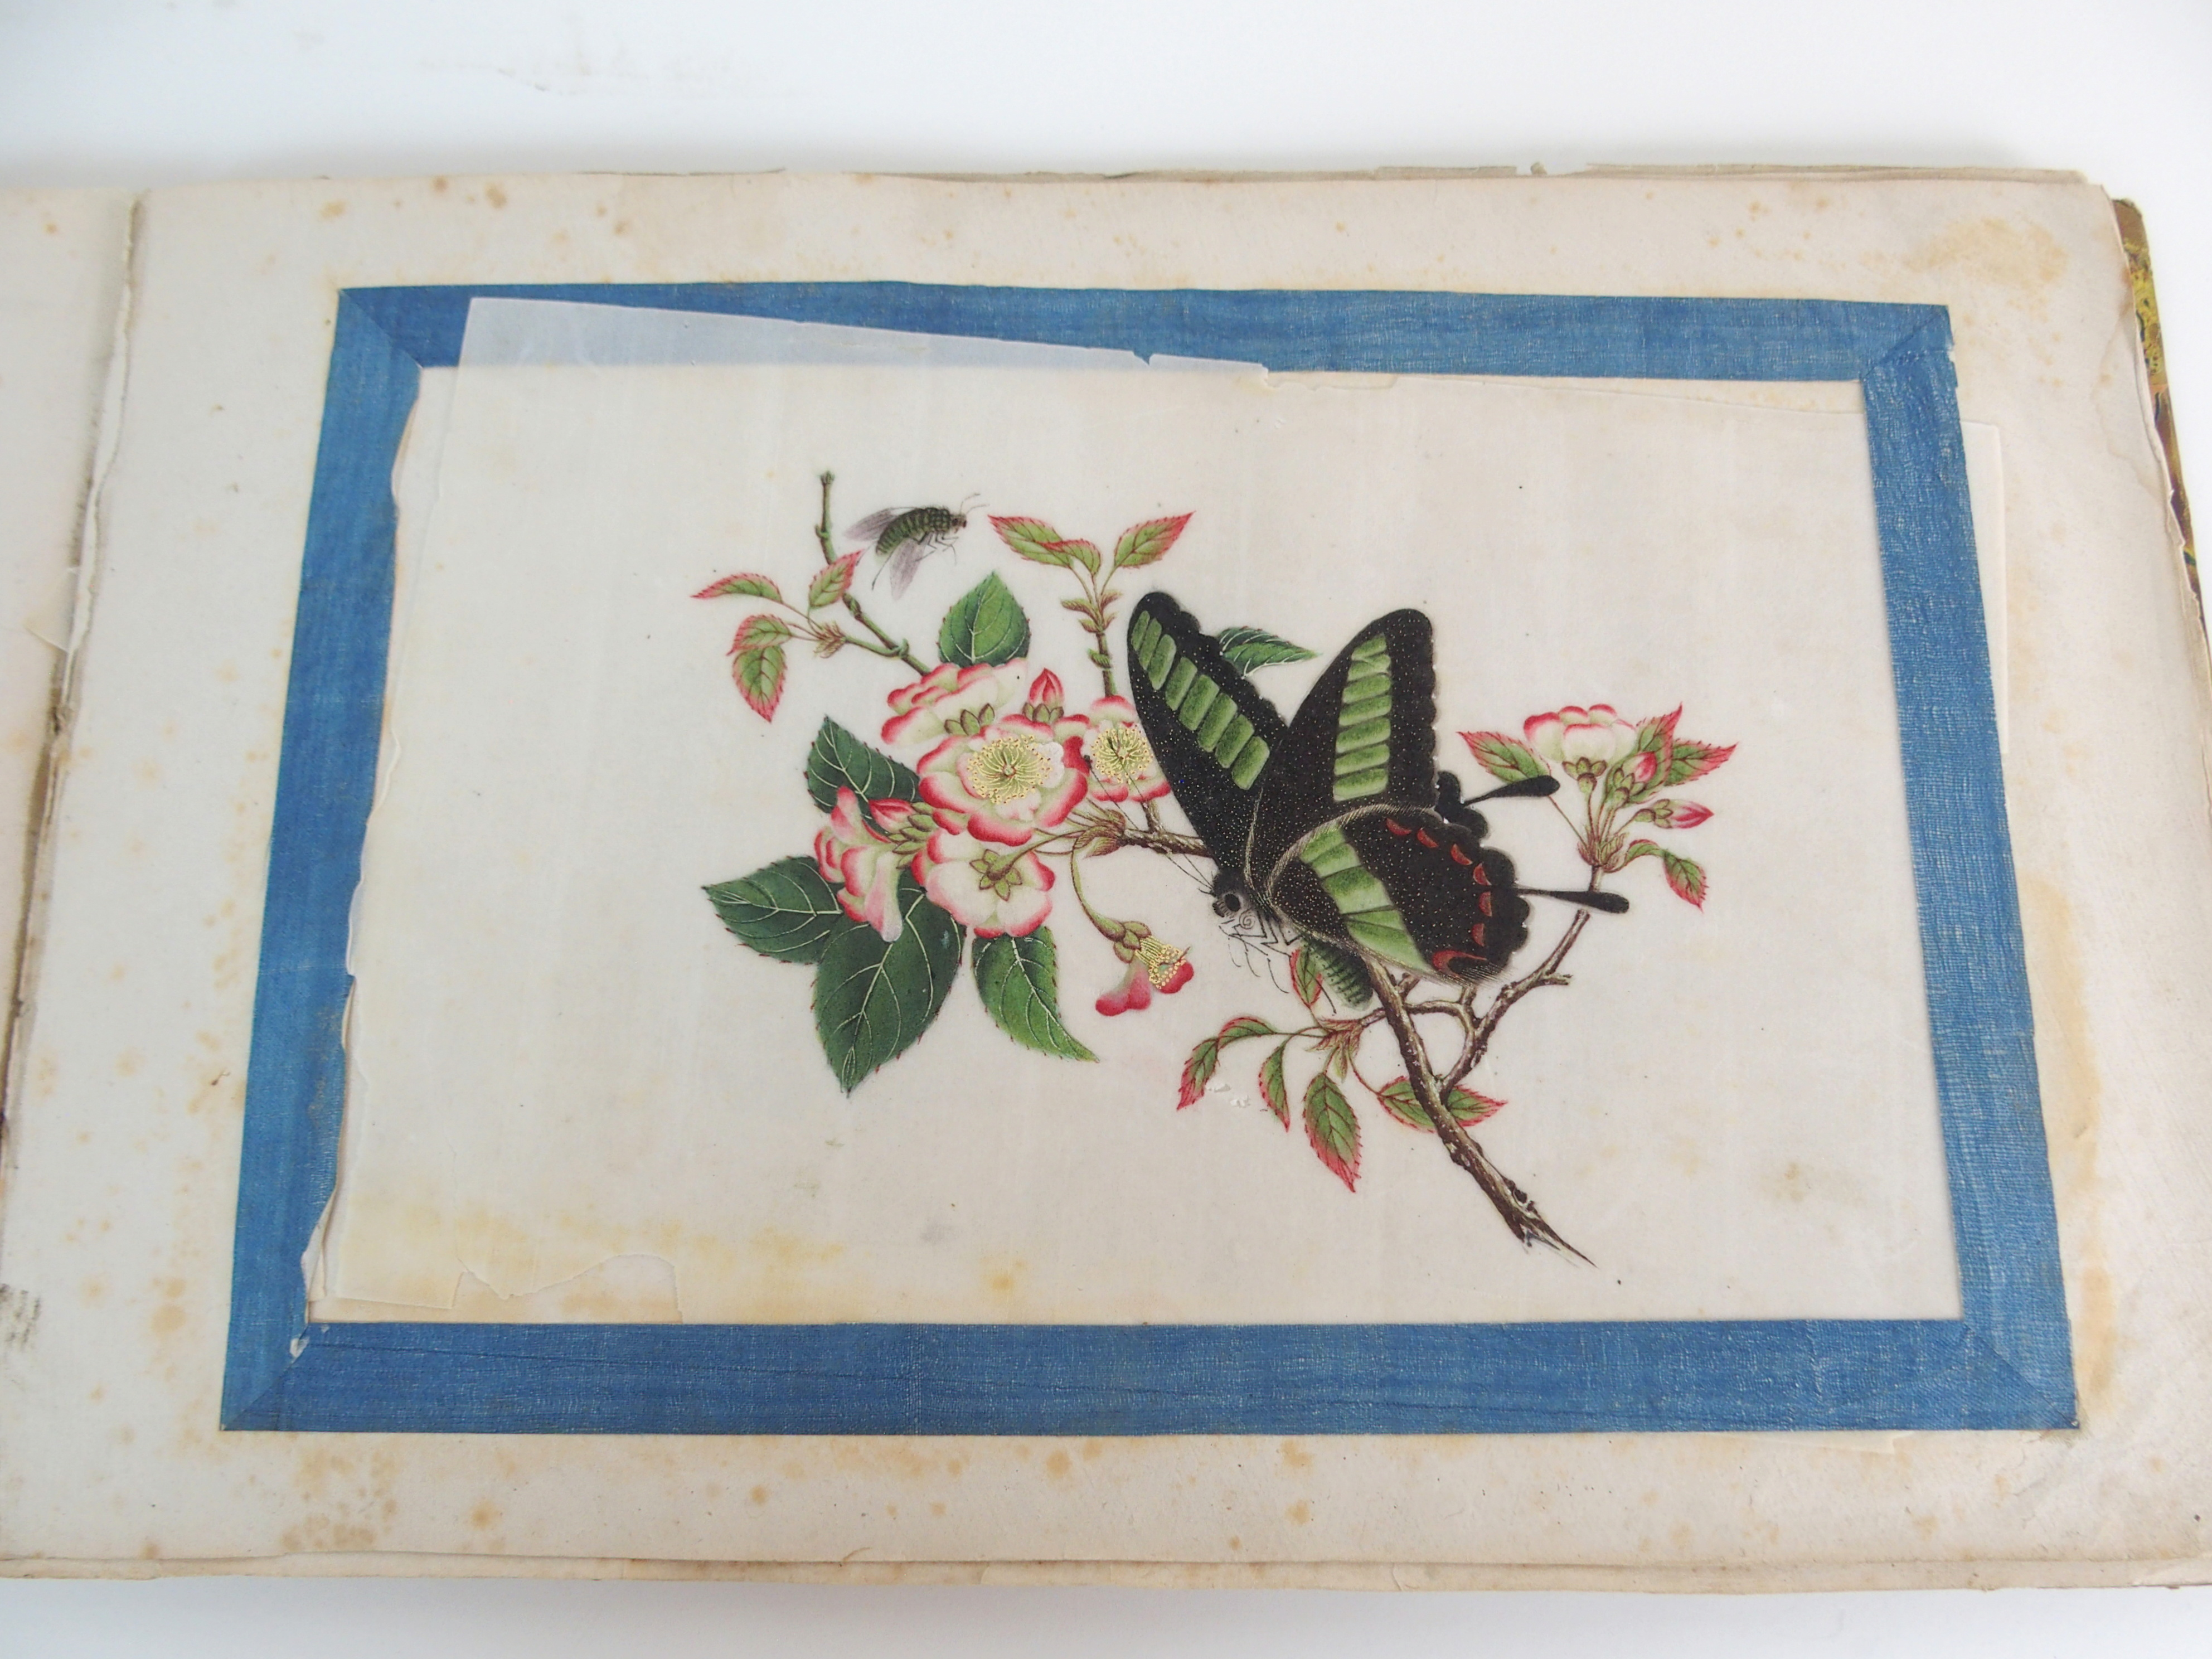 Lot 67 - ELEVEN CHINESE BOTANICAL AND INSECT WATERCOLOURS the specimen flowers with insects,on pith, 14 x